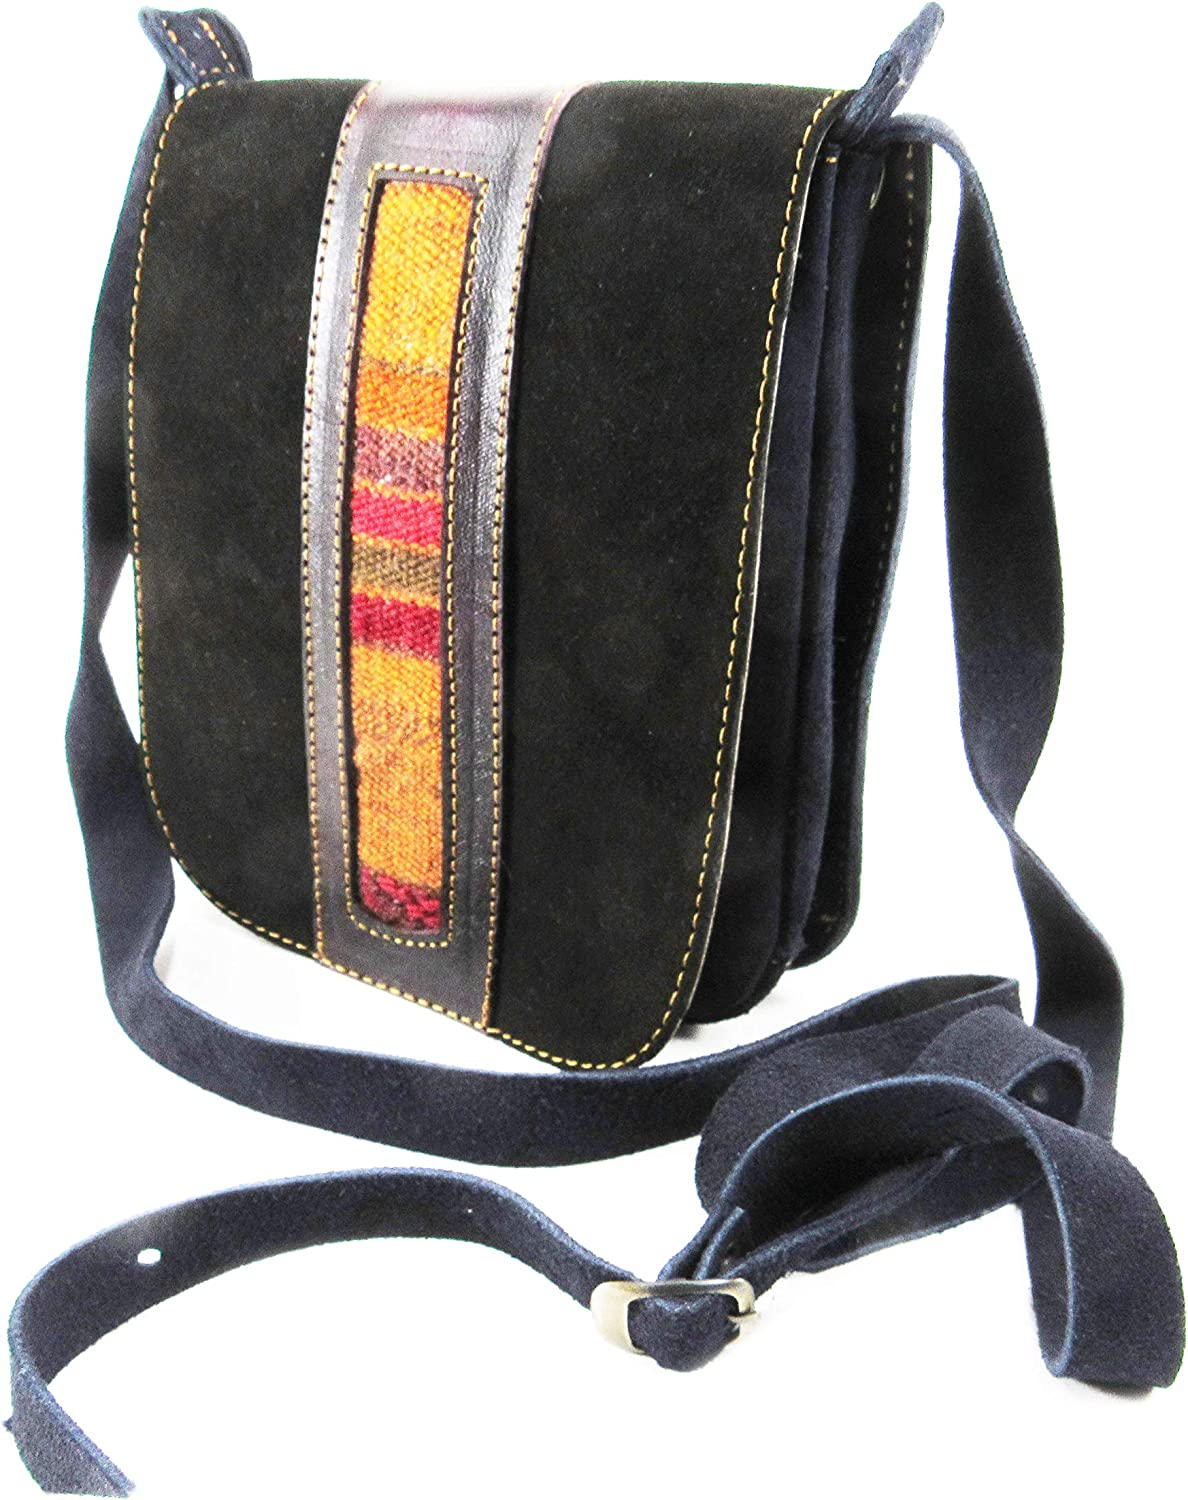 CHAMOIS LEATHER PURSE HANDBAG WITH GENUINE INKA TEXTILE FOR WOMEN BY MACHU PICCHU STORE 201303